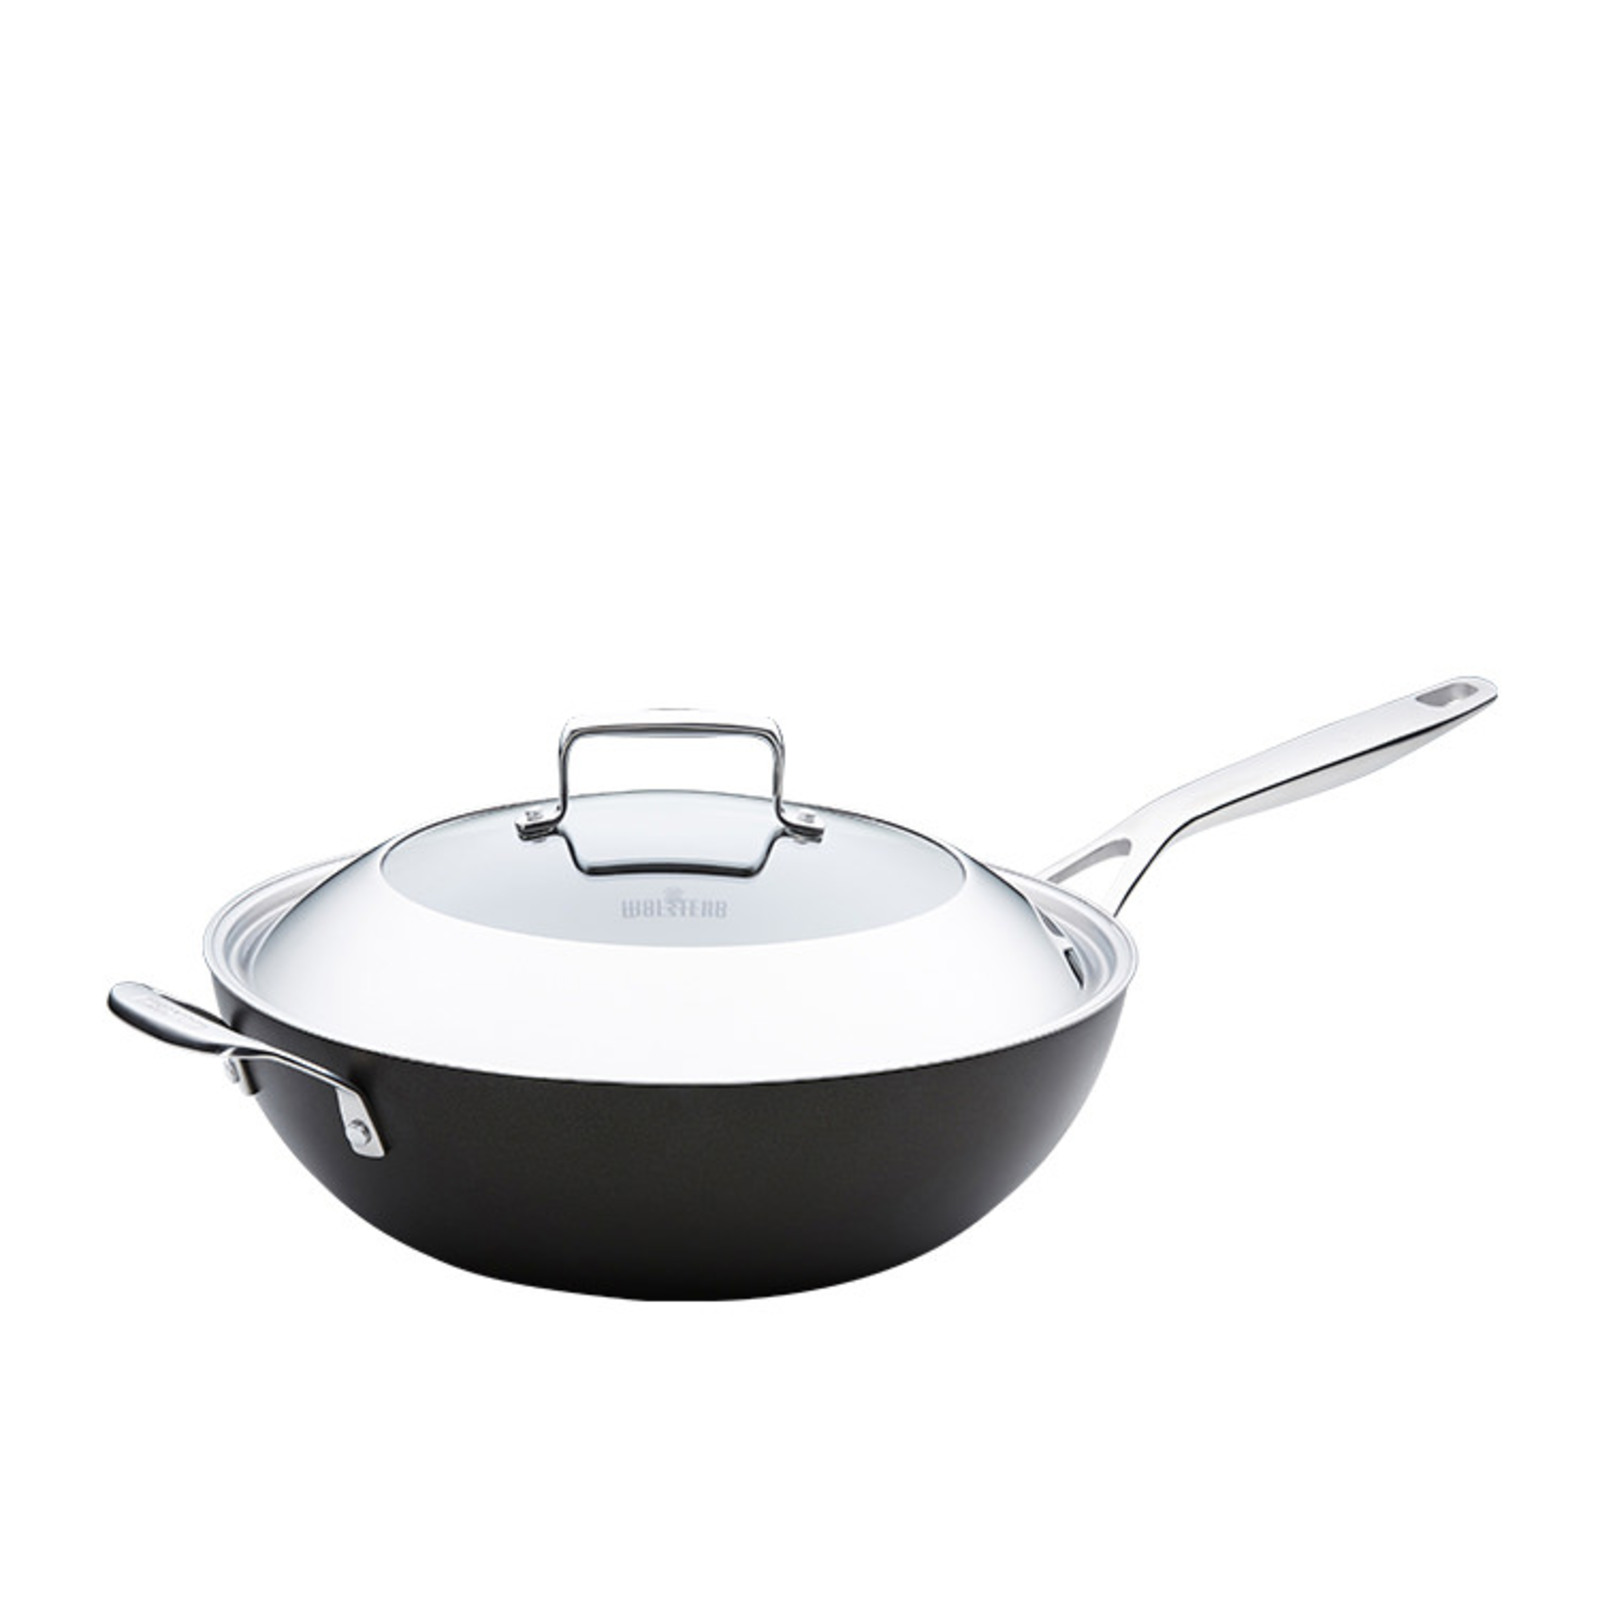 Wolstead Superior+ Wok with Lid and Helper Handle 32cm - 5.9L